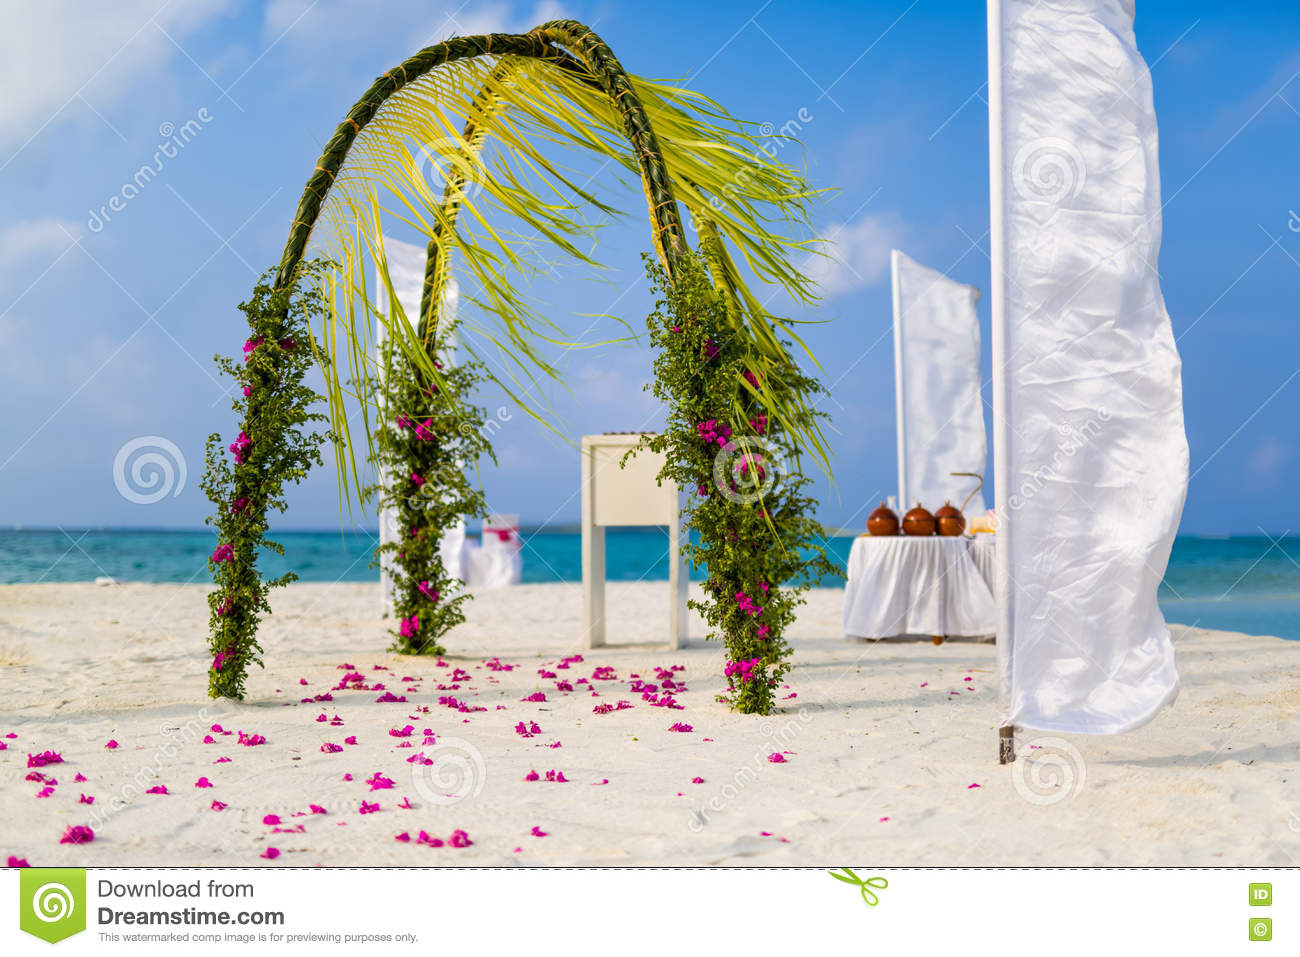 Royalty Free Stock Photo Download Amazing Beach Wedding Venue In Maldives